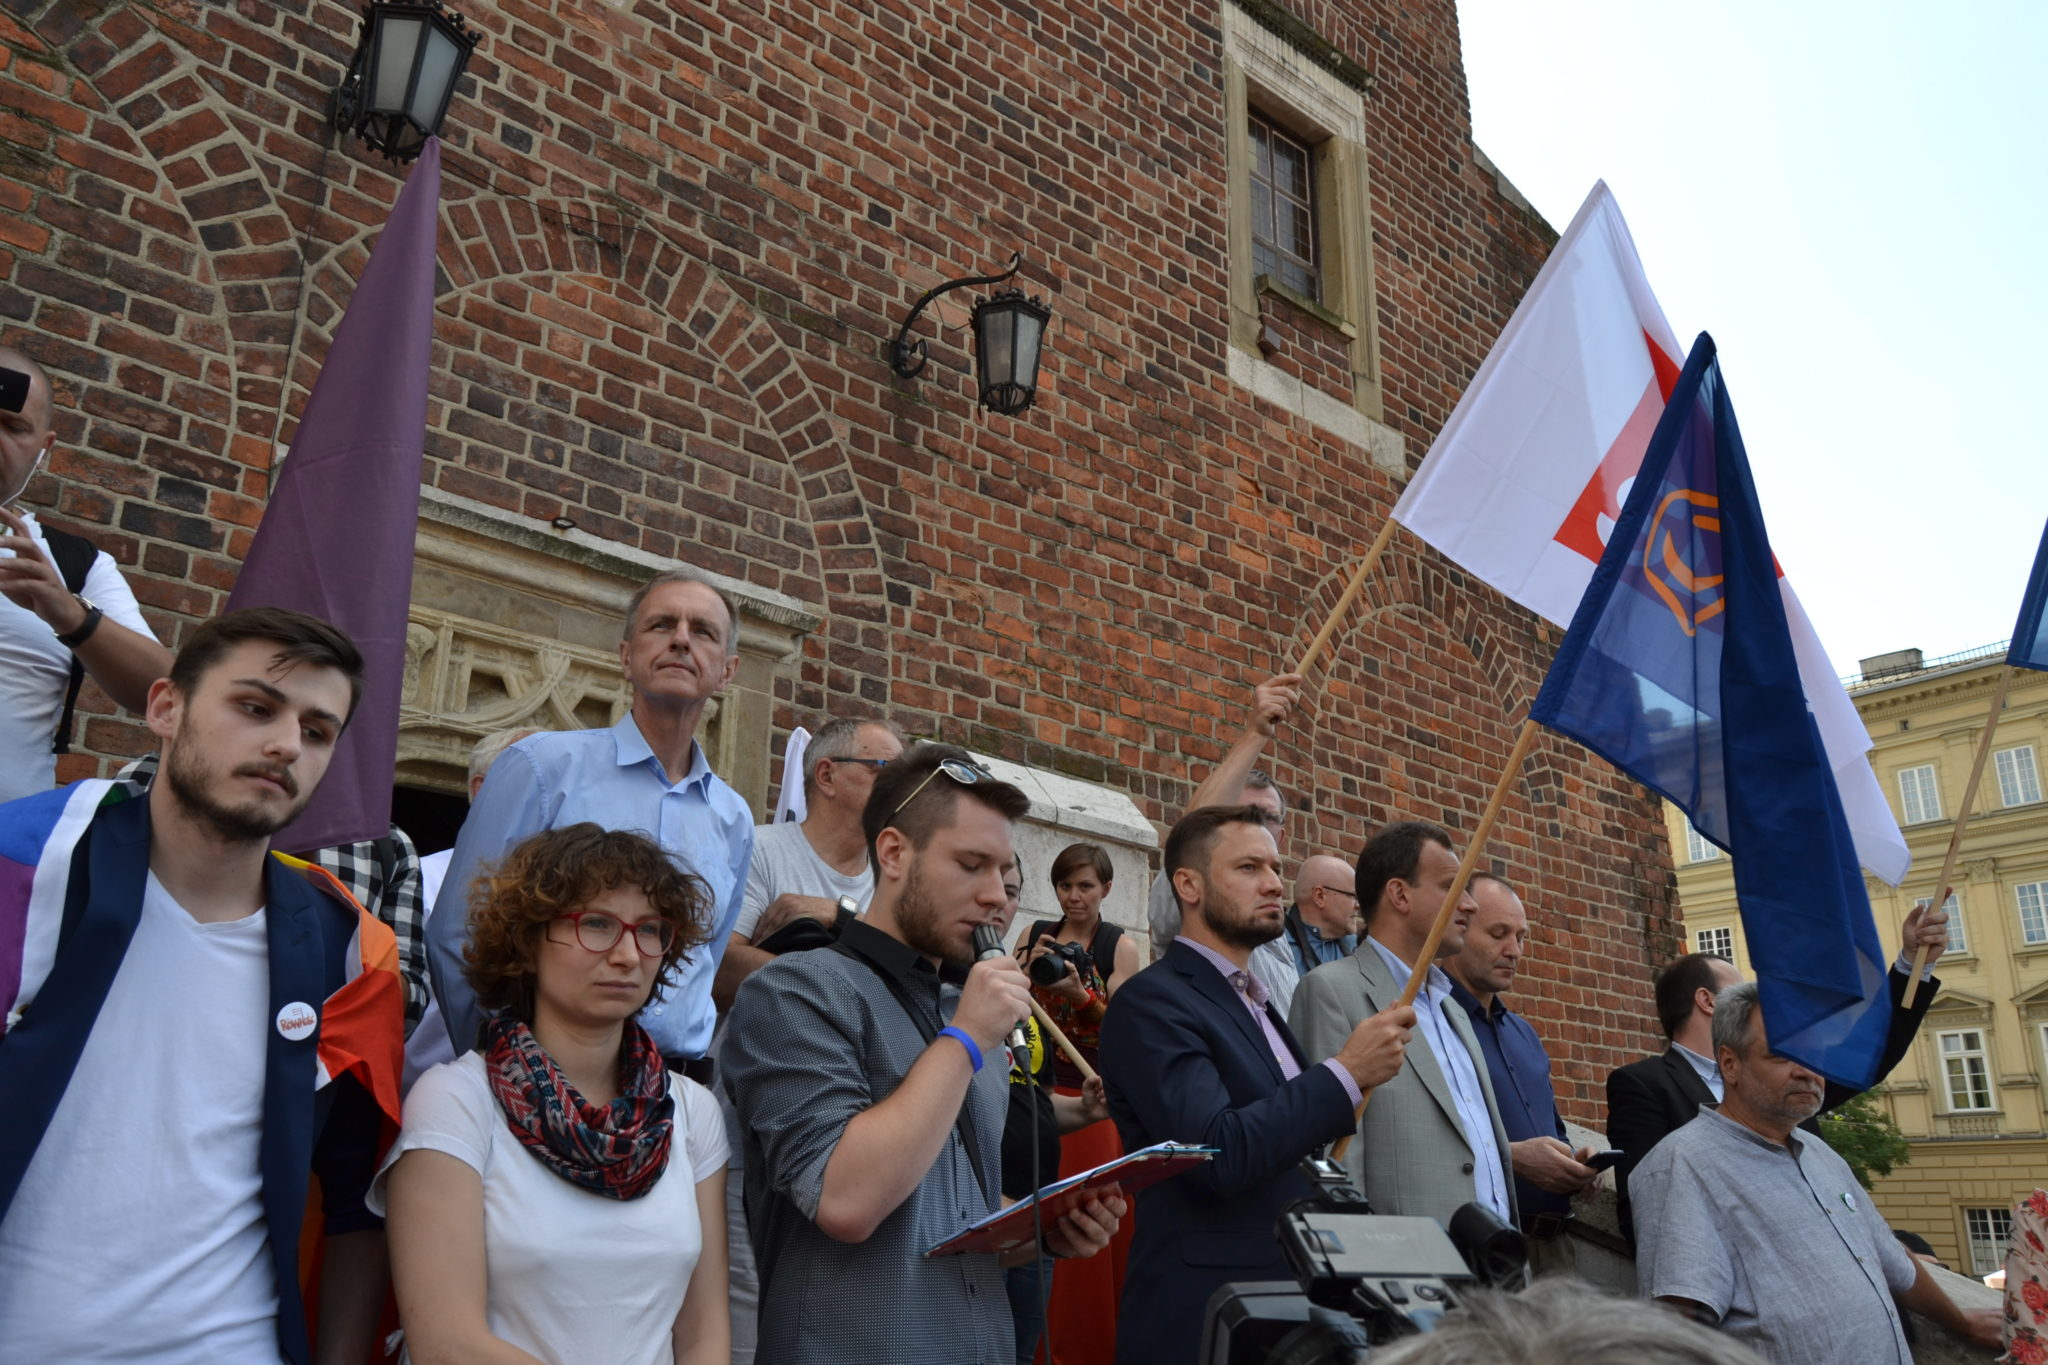 Leaders of various political parties and organizations assemble on the steps of Krakow's Town Hall Tower to speak out against the bill by PiS